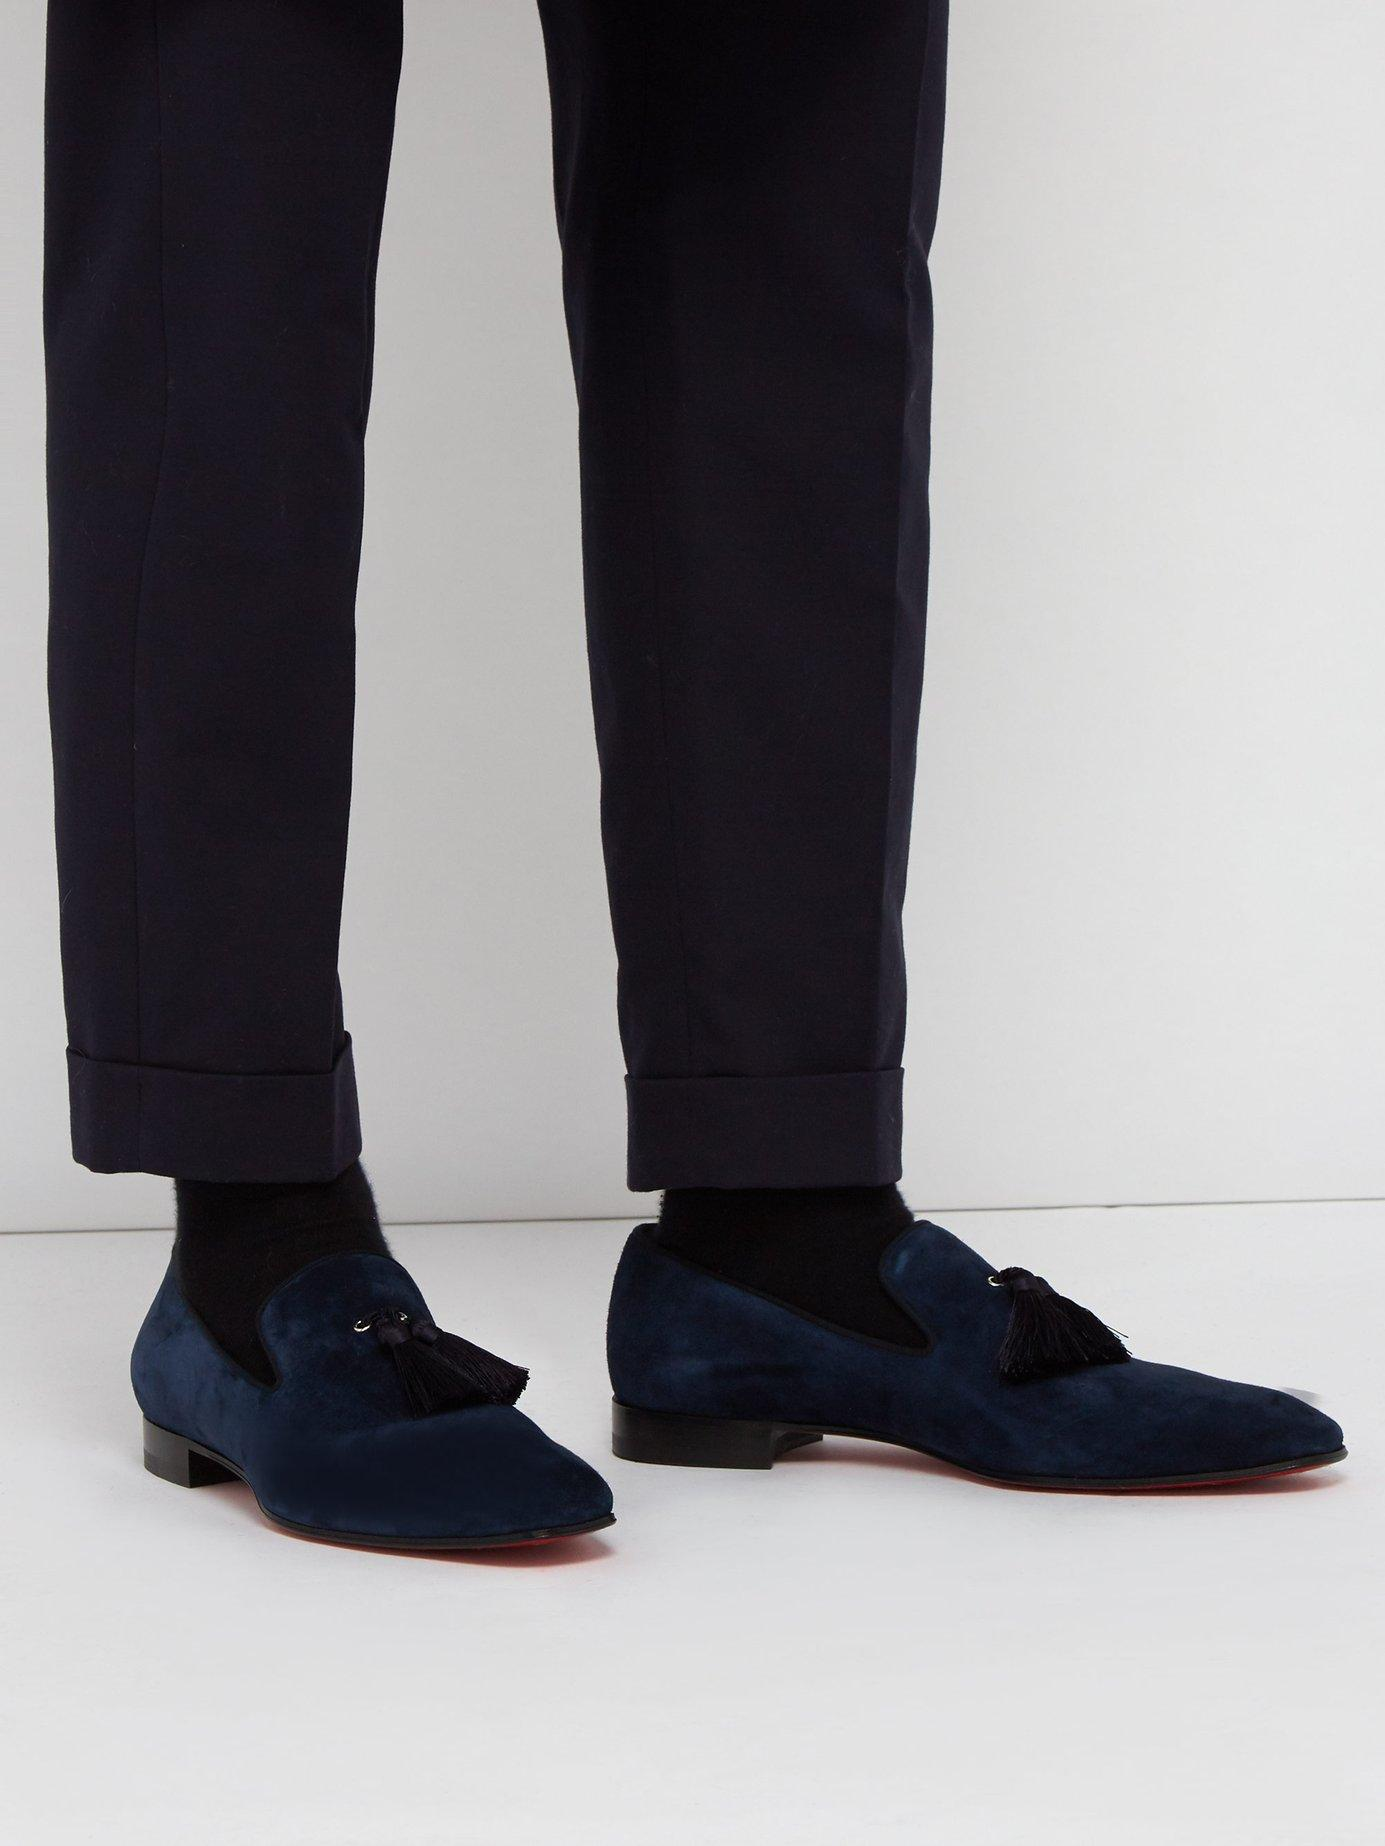 83a90d561bd6 Lyst - Christian Louboutin Officialito Serge Tassel Loafers in Blue for Men